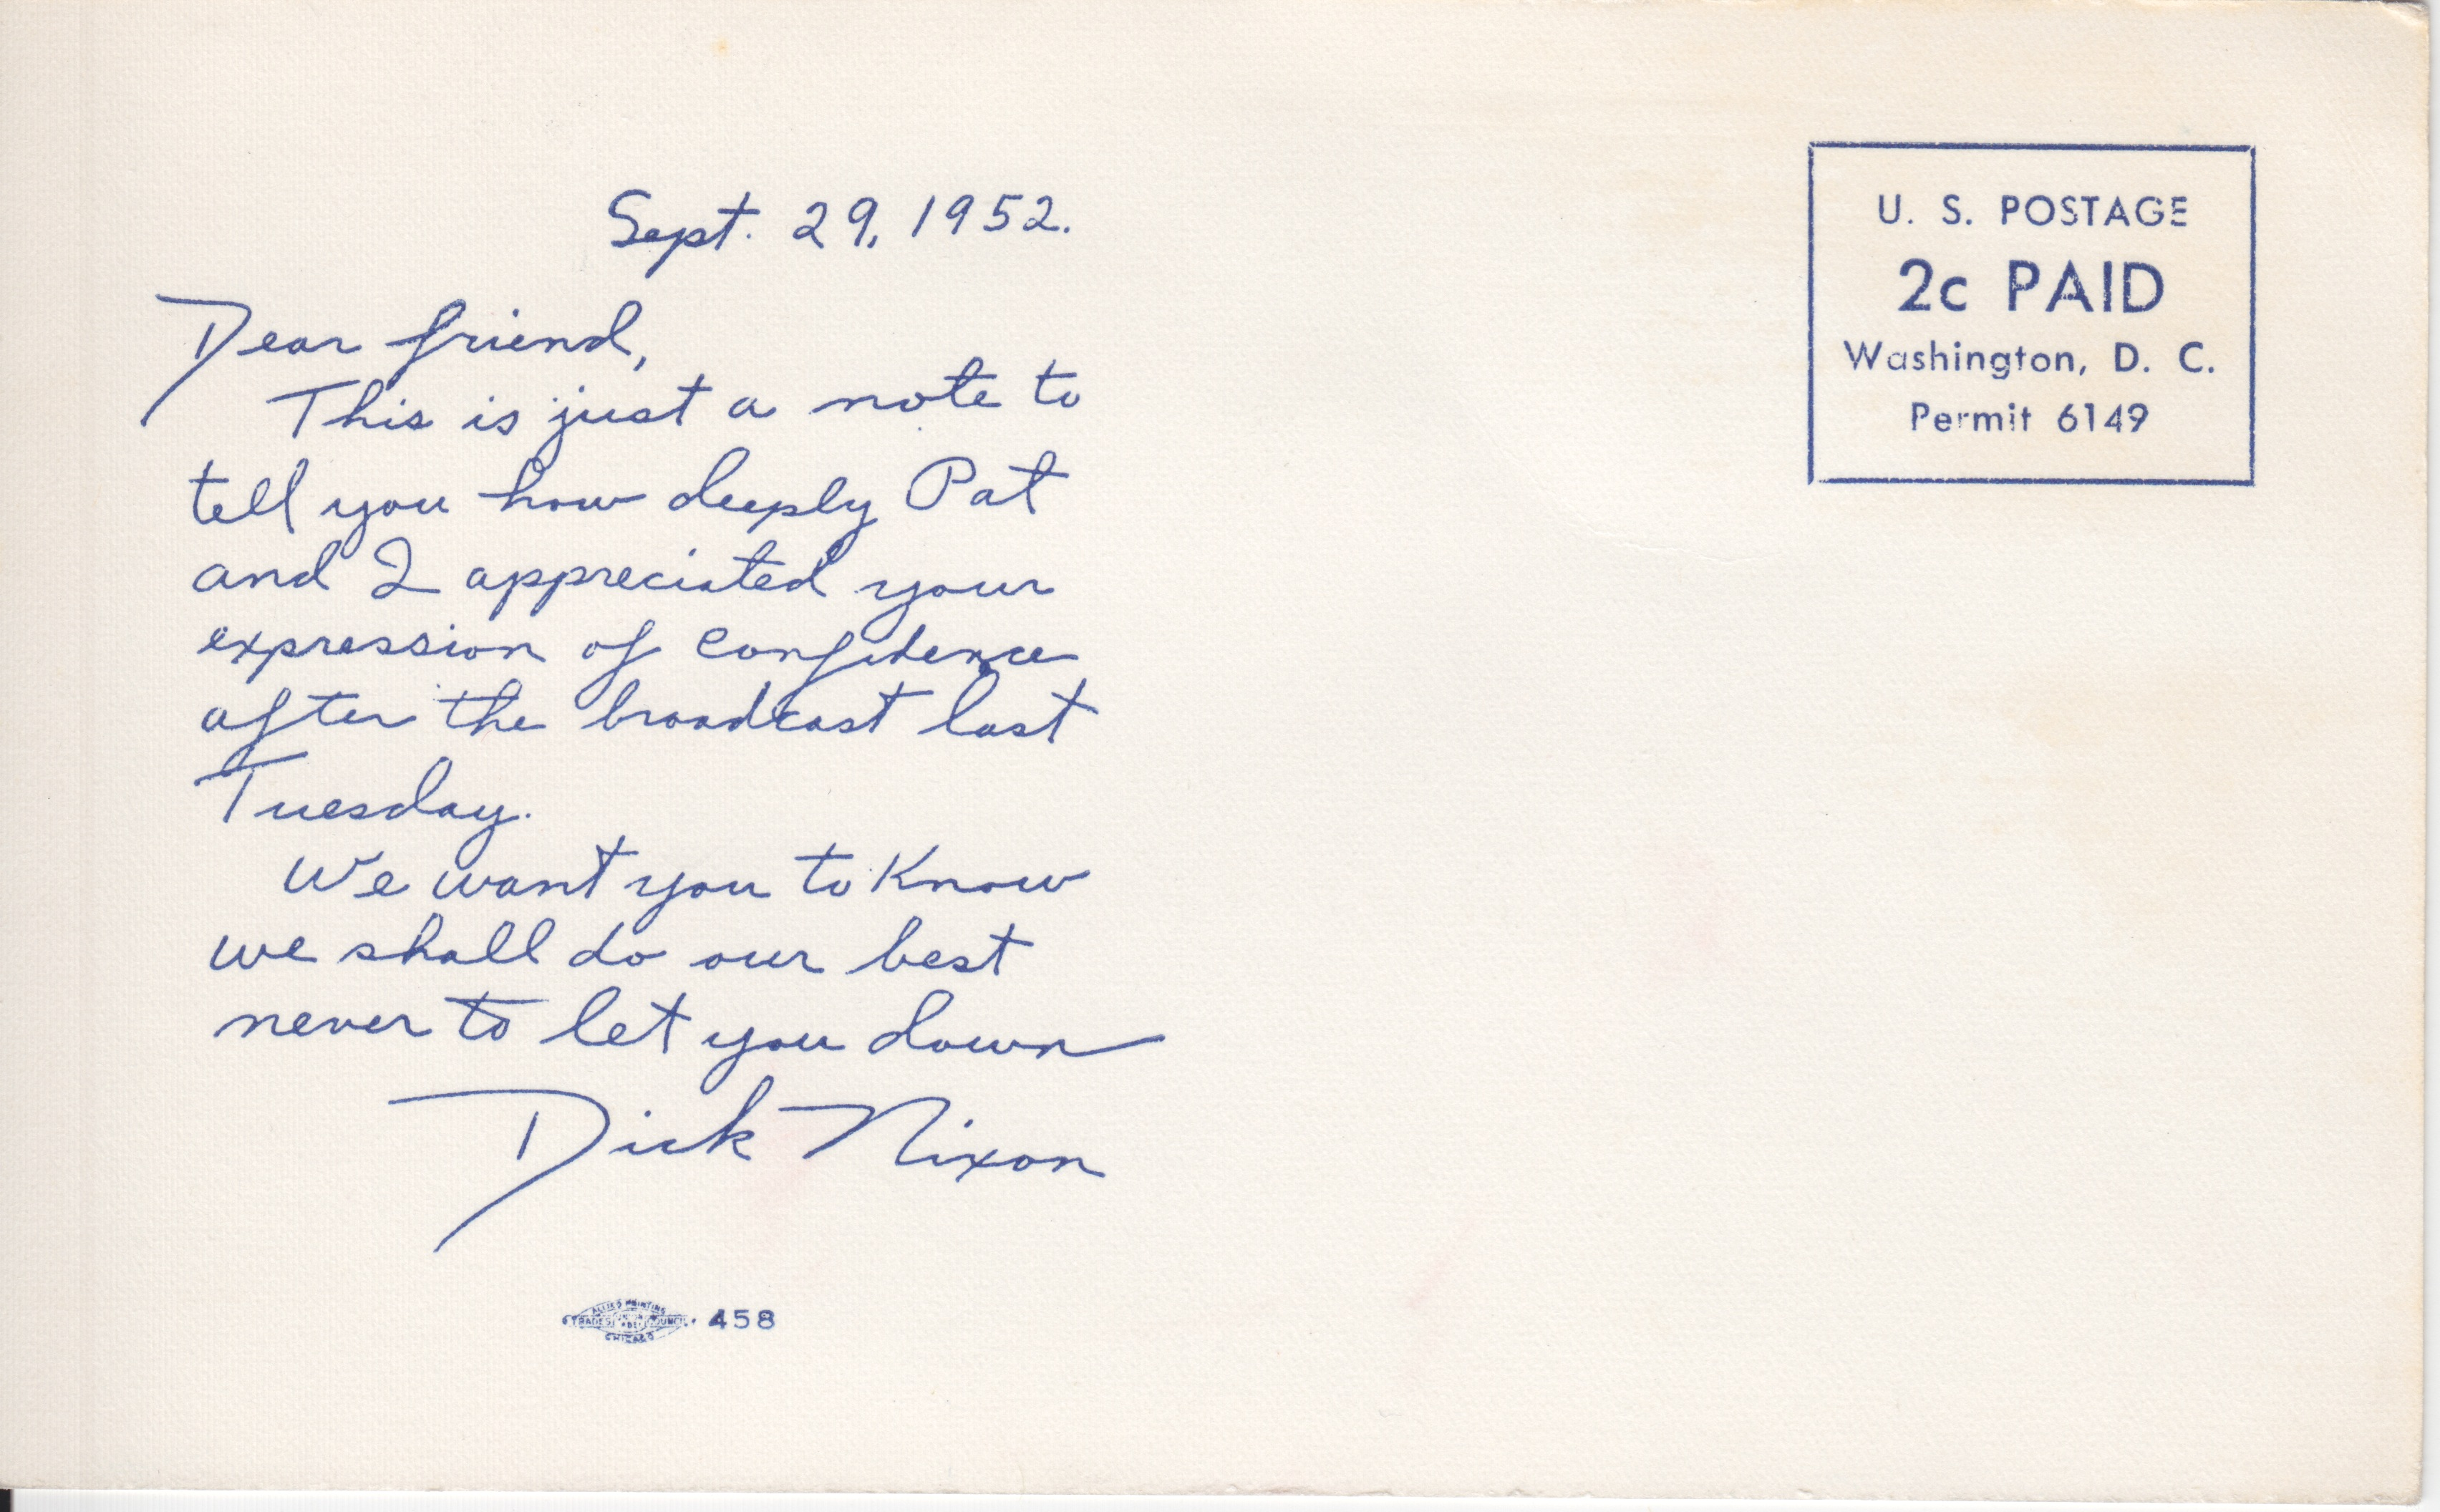 File:Nixon 1952 postcard.jpg Wikimedia Commons